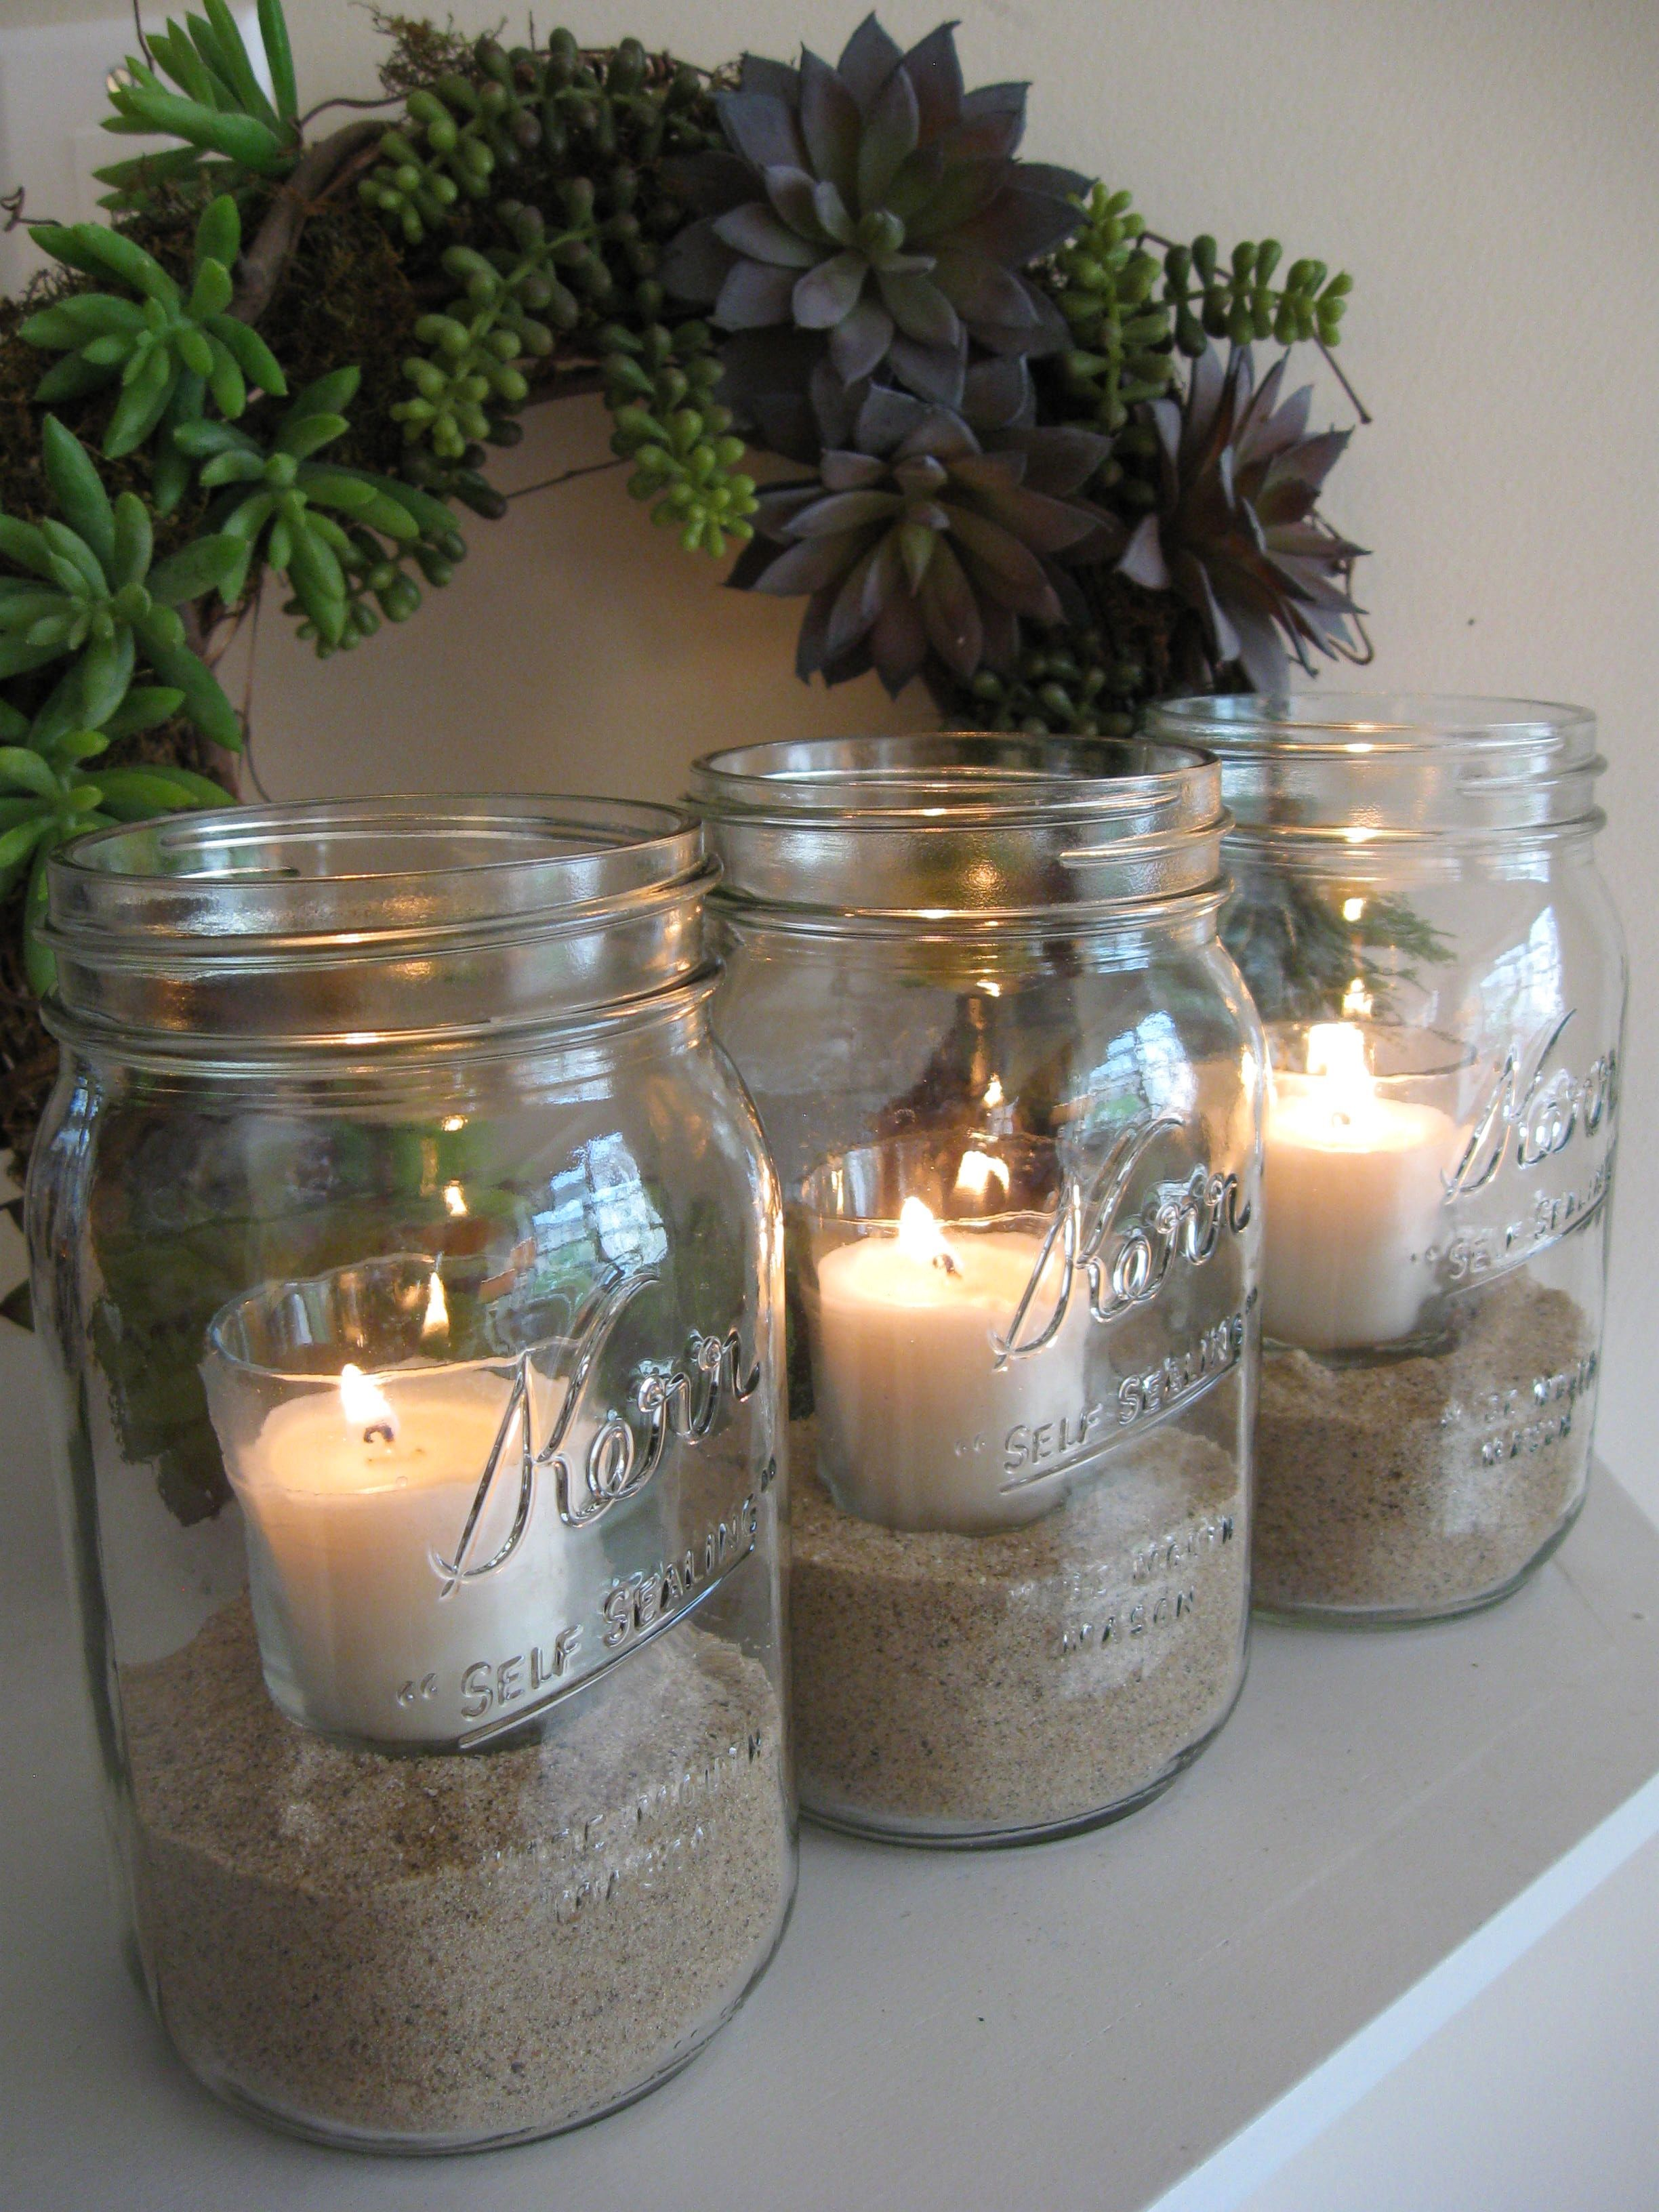 Glass votive candles set into clean, dry sand (Lowe's or